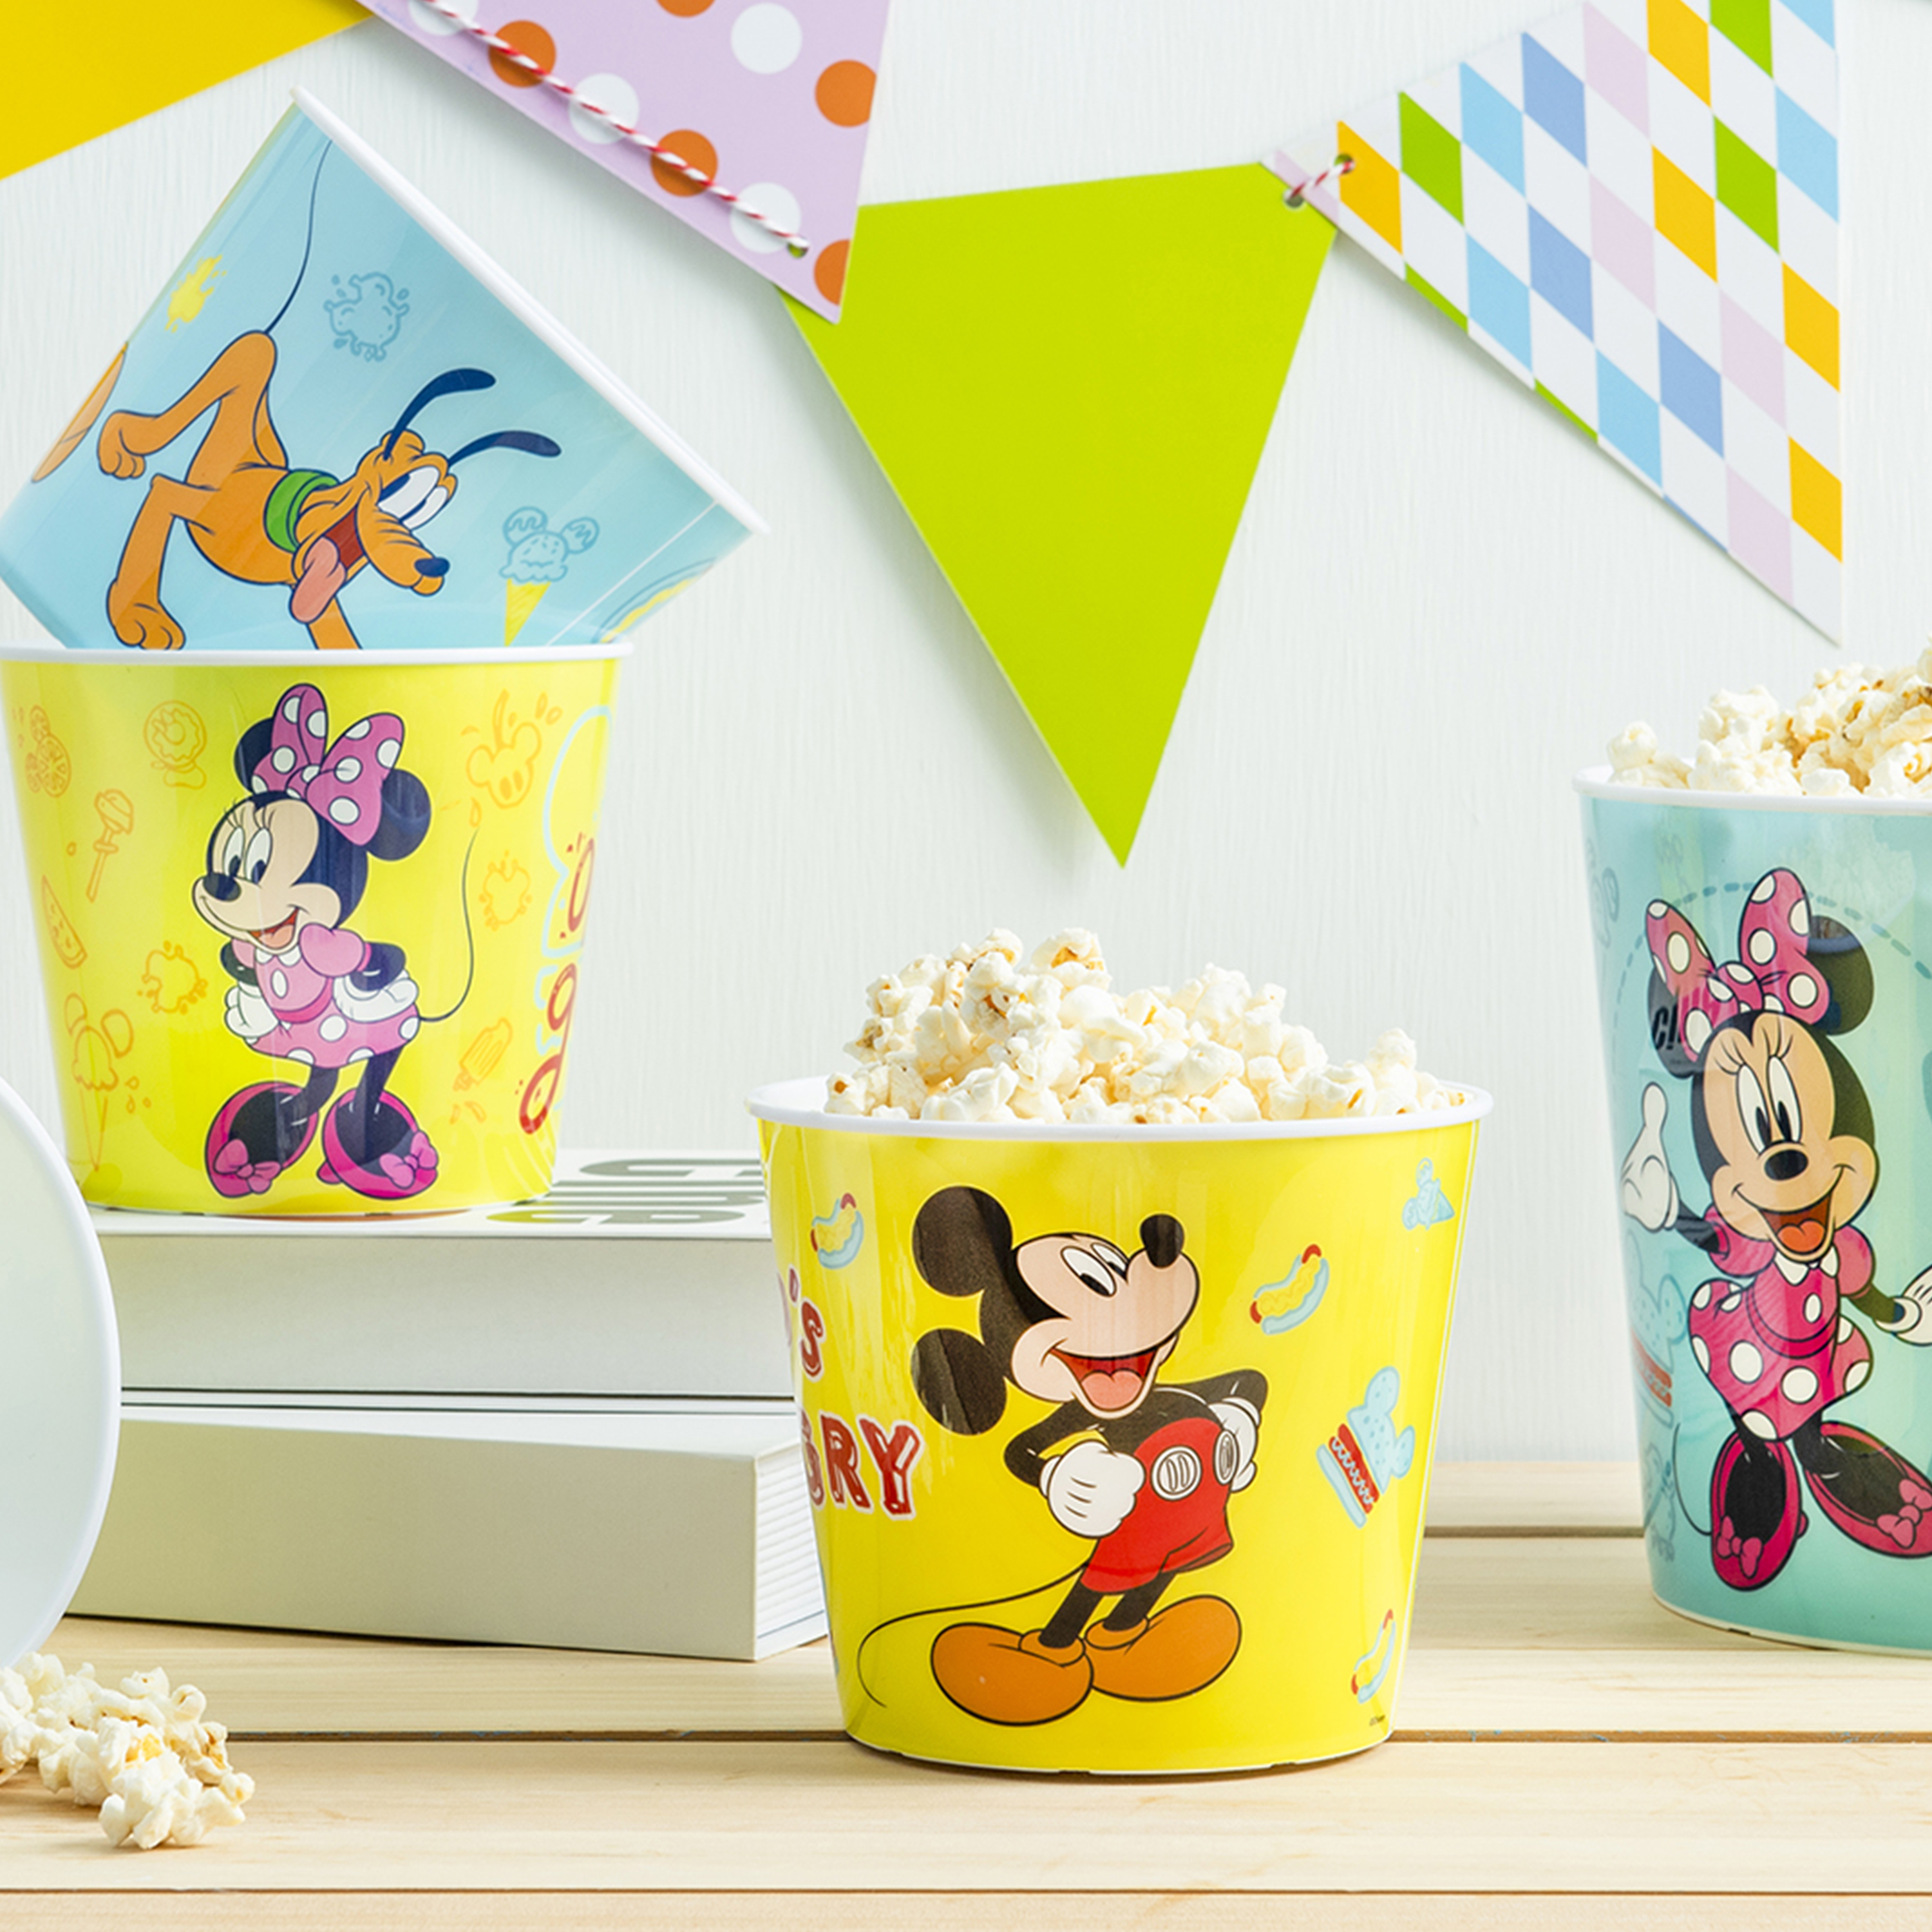 Disney Plastic Popcorn Container and Bowls, Mickey Mouse and Minnie Mouse, 5-piece set slideshow image 7